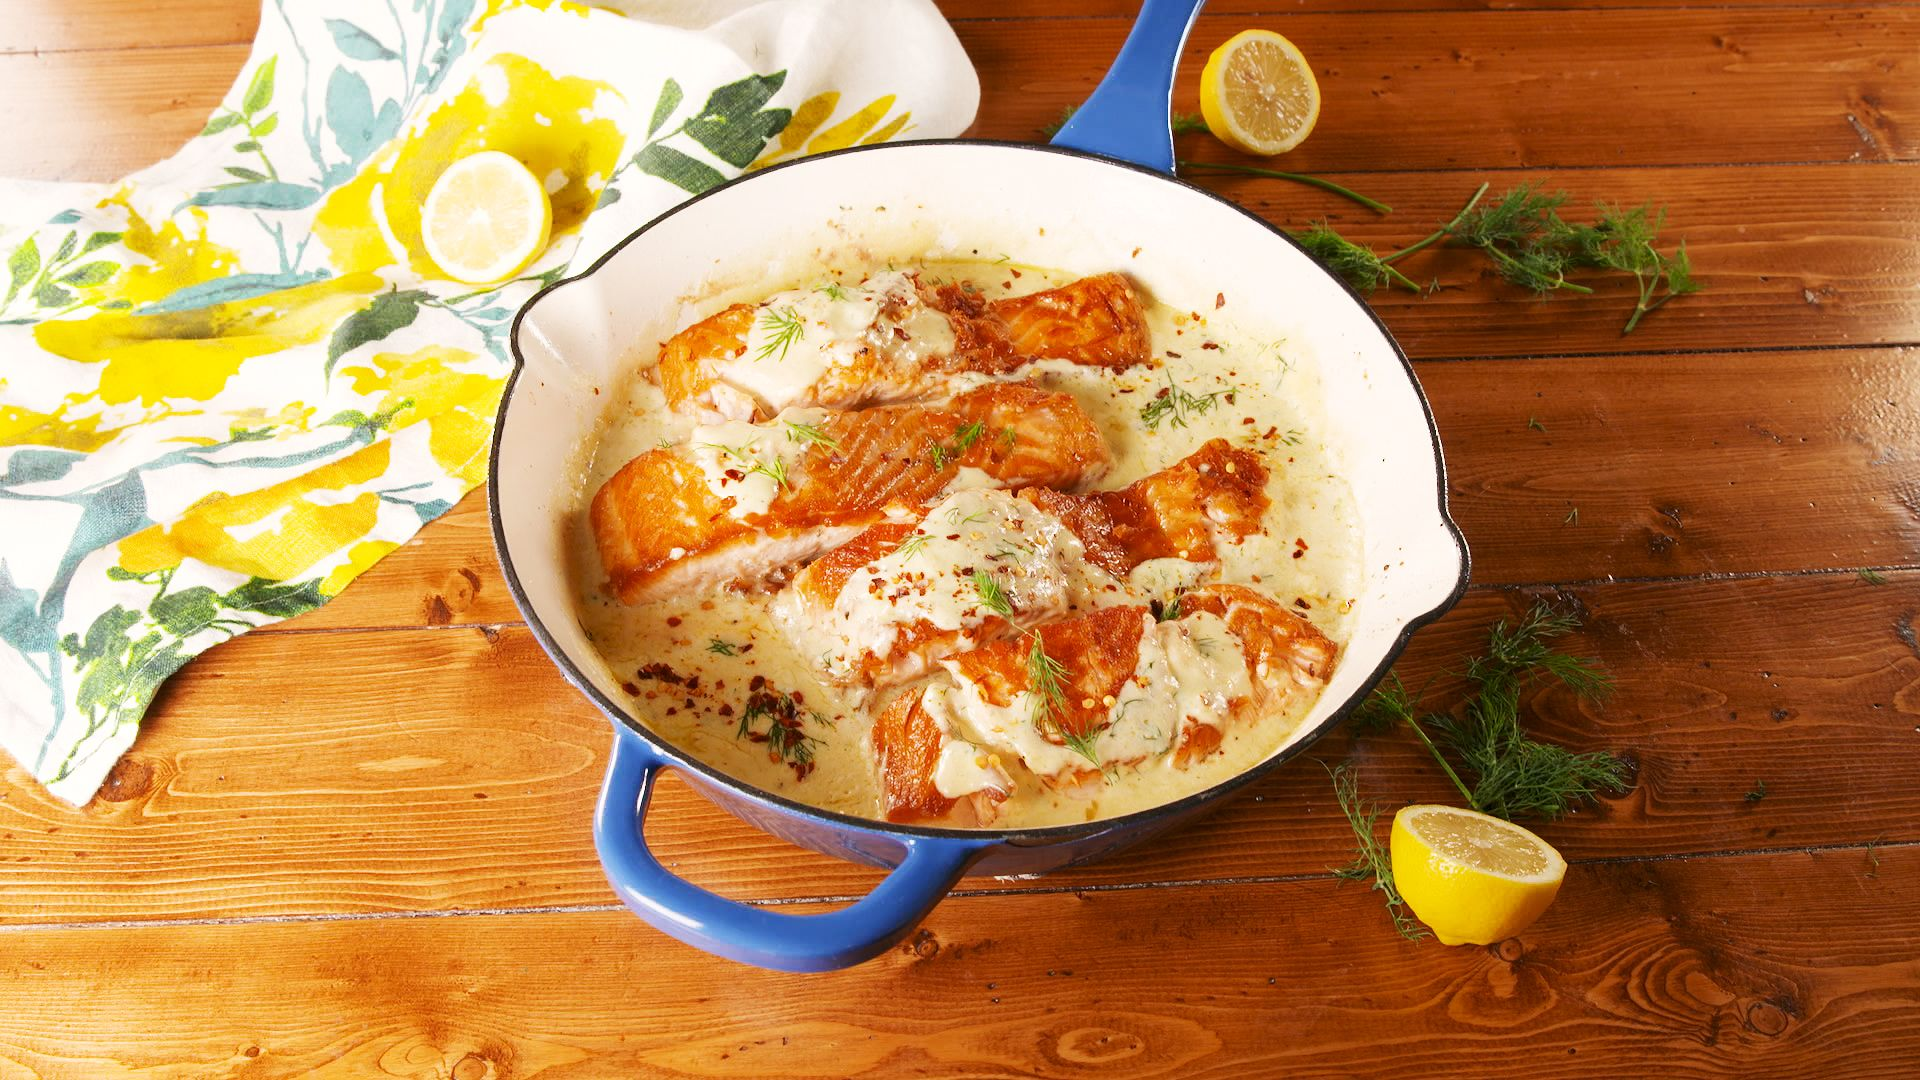 Creamy Lemon Garlic Salmon